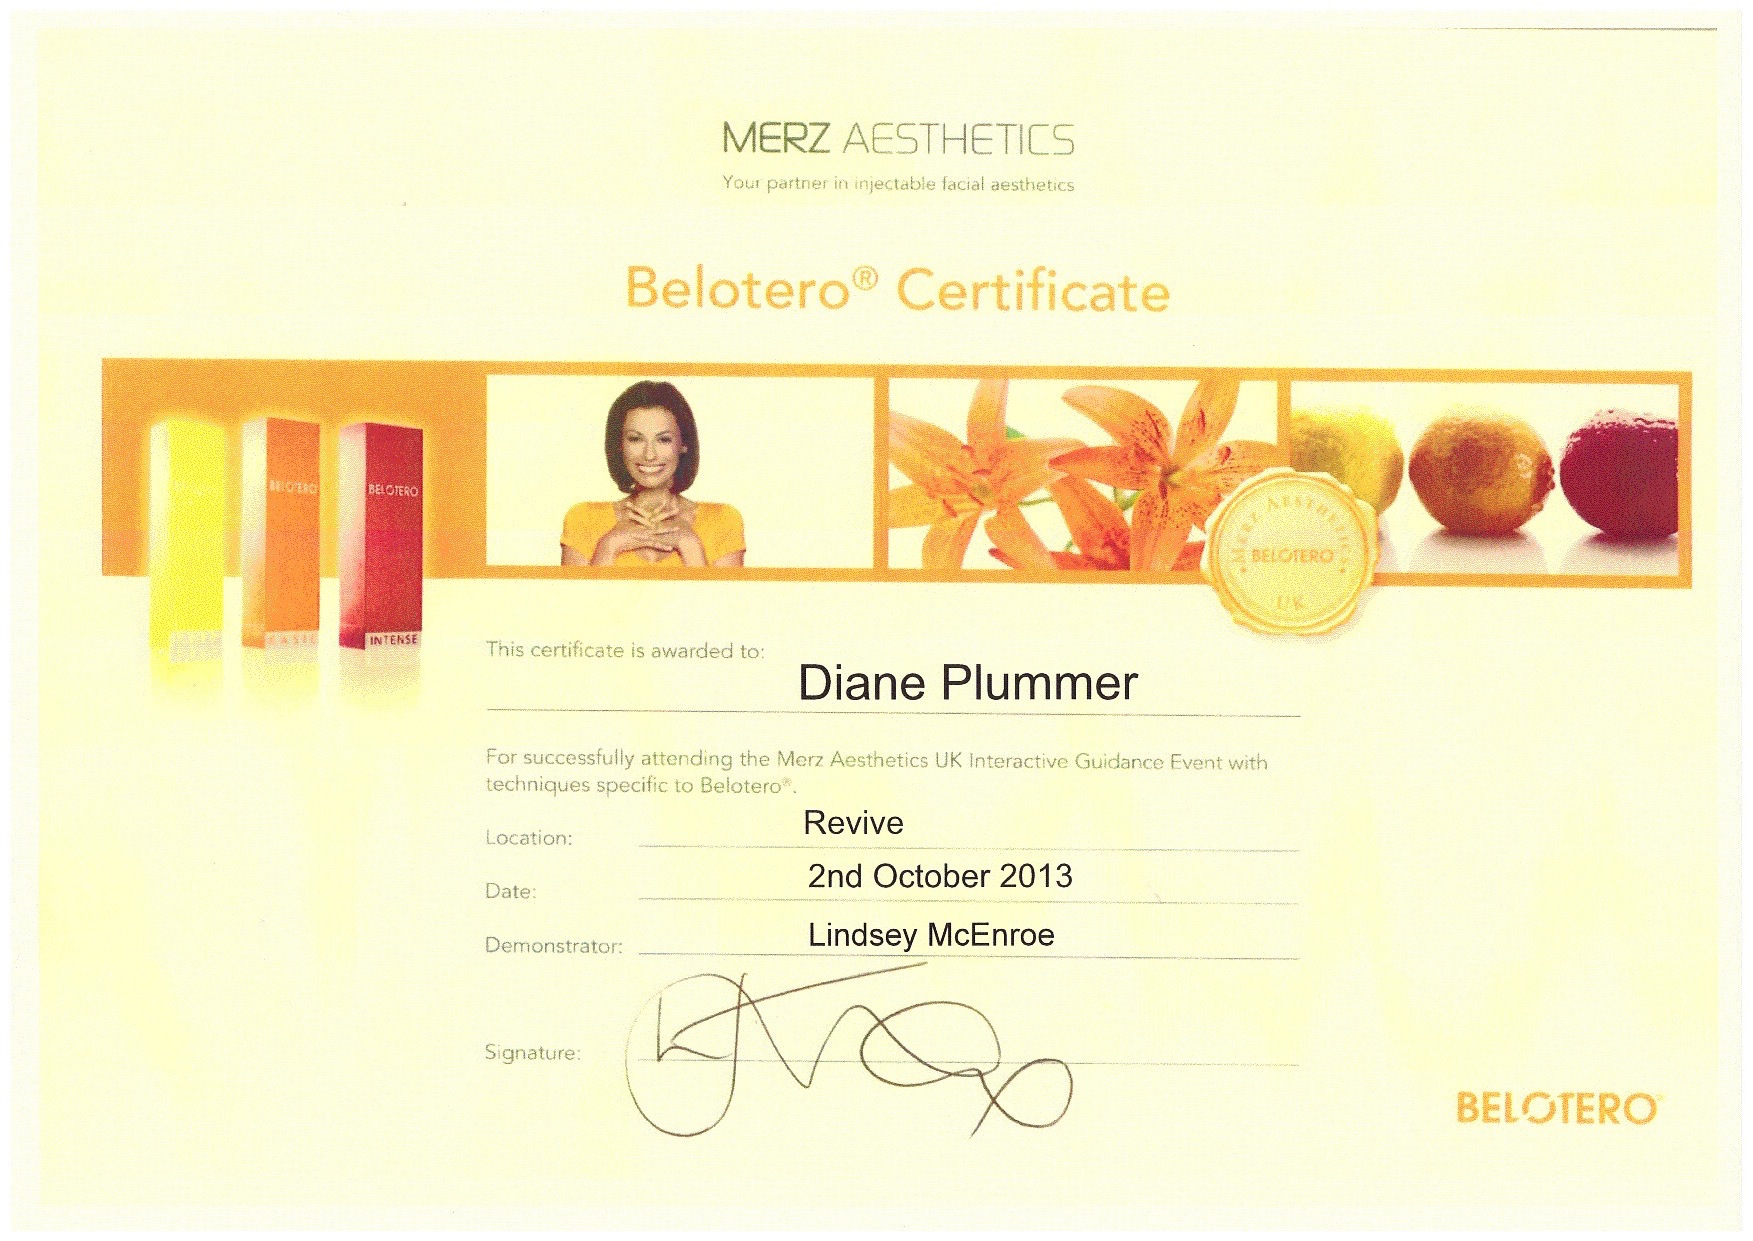 Merz Aesthetics - Belotero certification